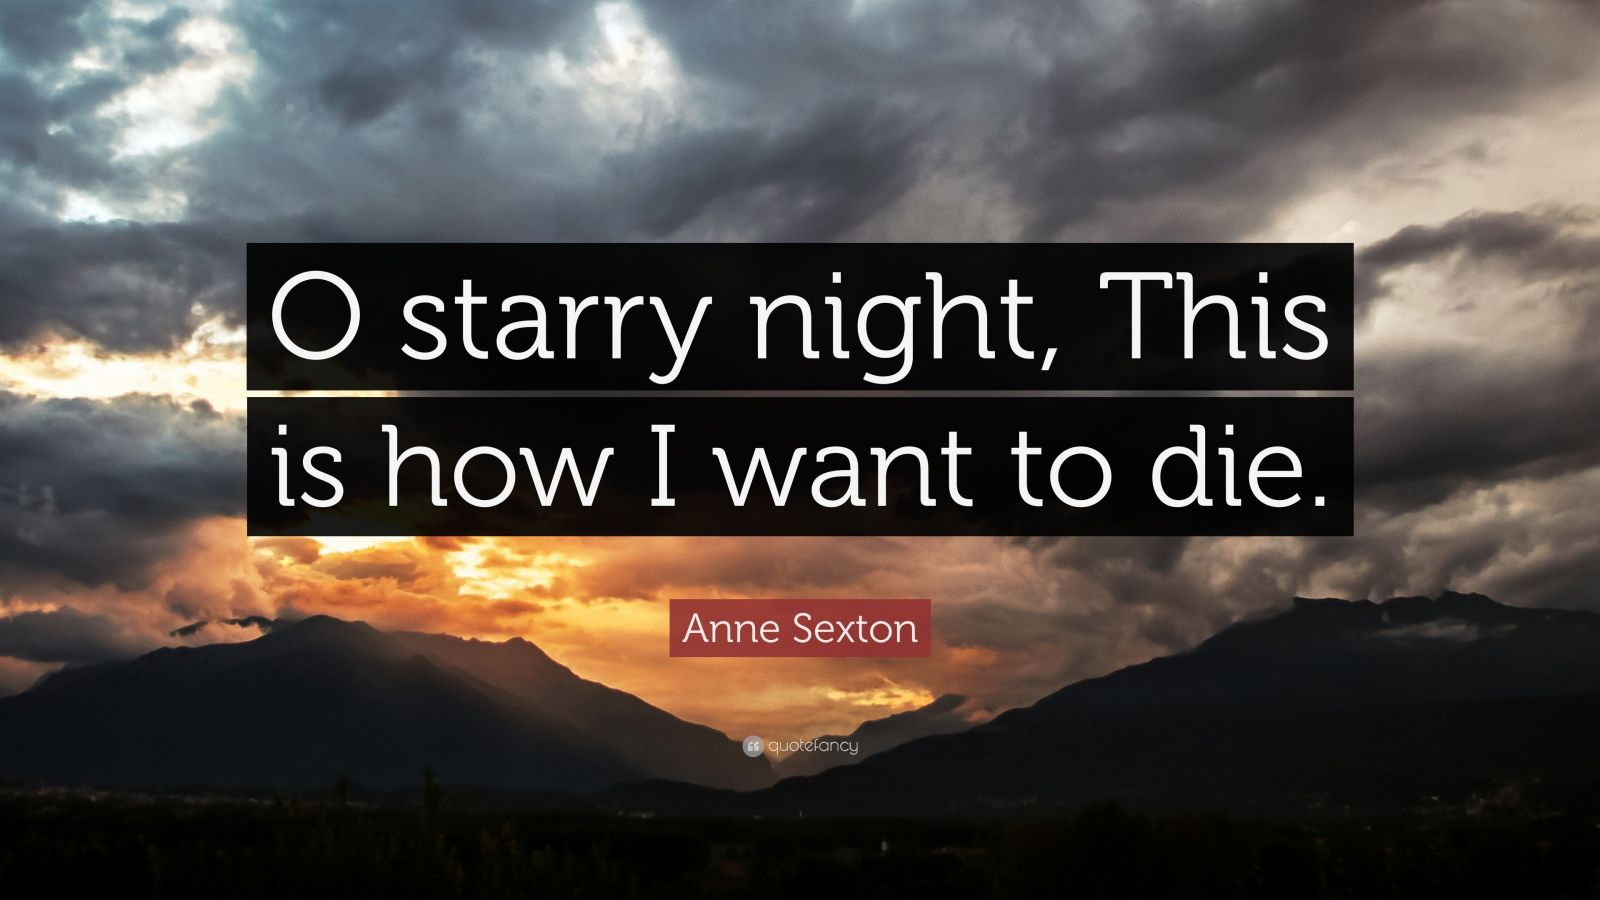 anne sexton the starry night essay